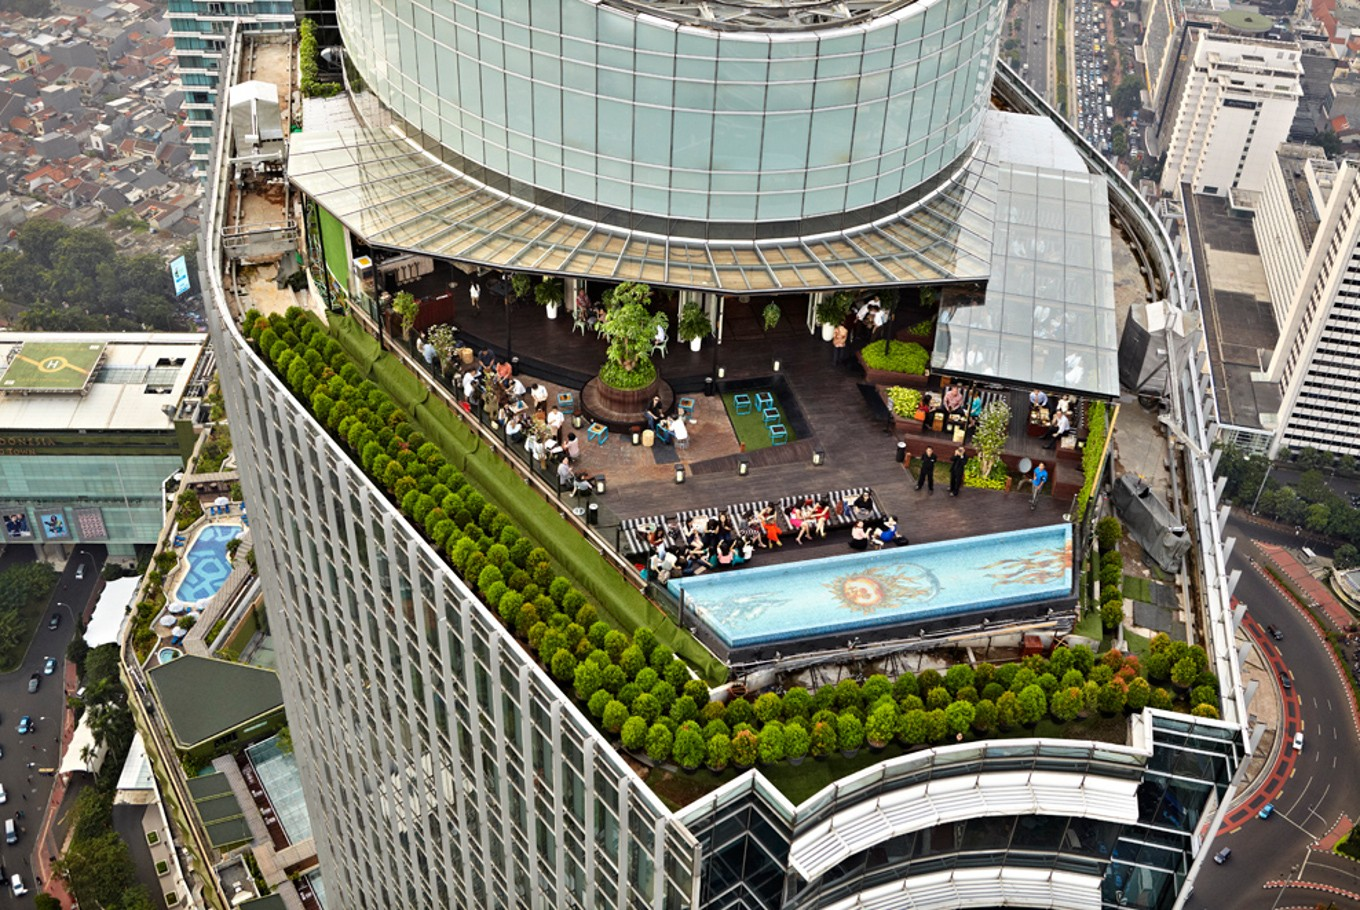 Jakpost nightlife: Rooftop Bars